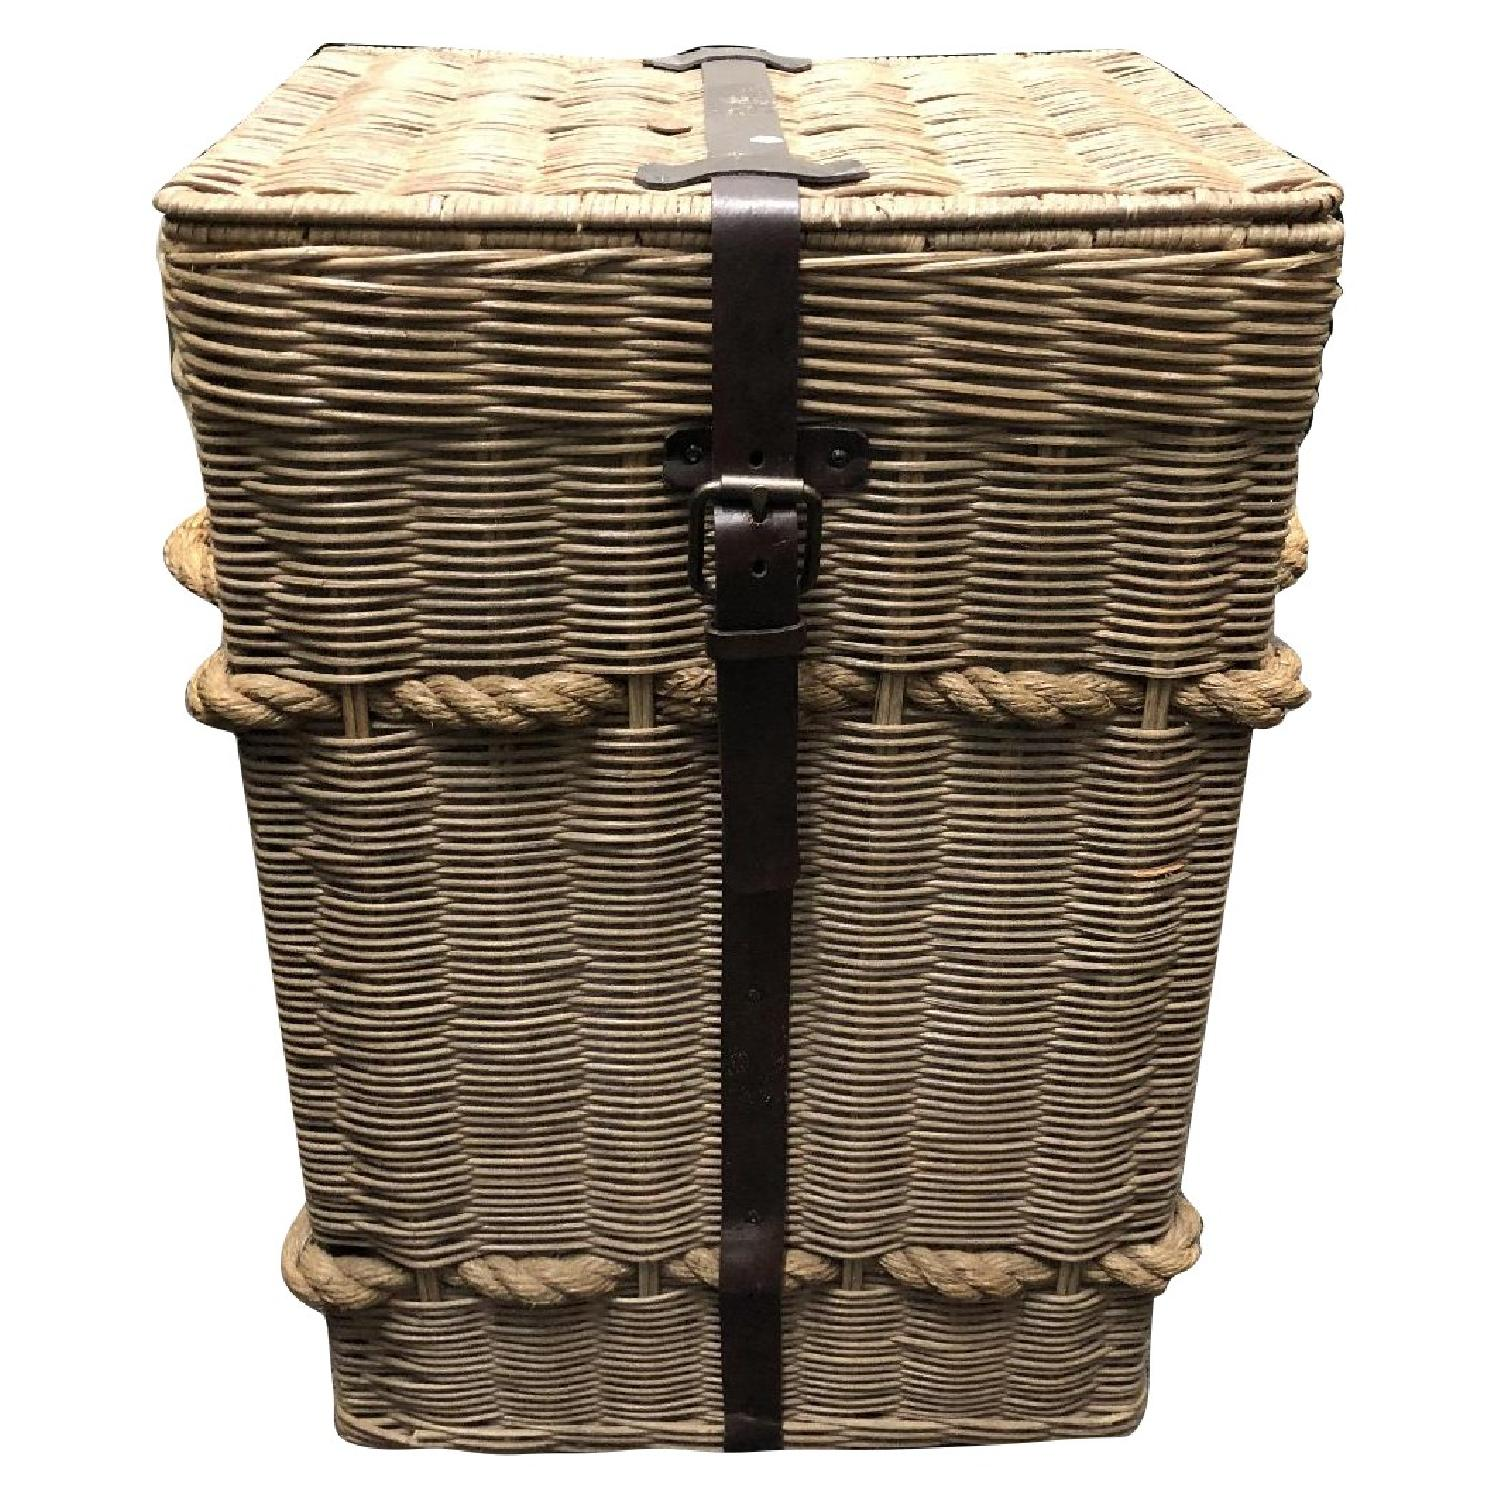 Pottery Barn Tall Basket w/ Leather Strap